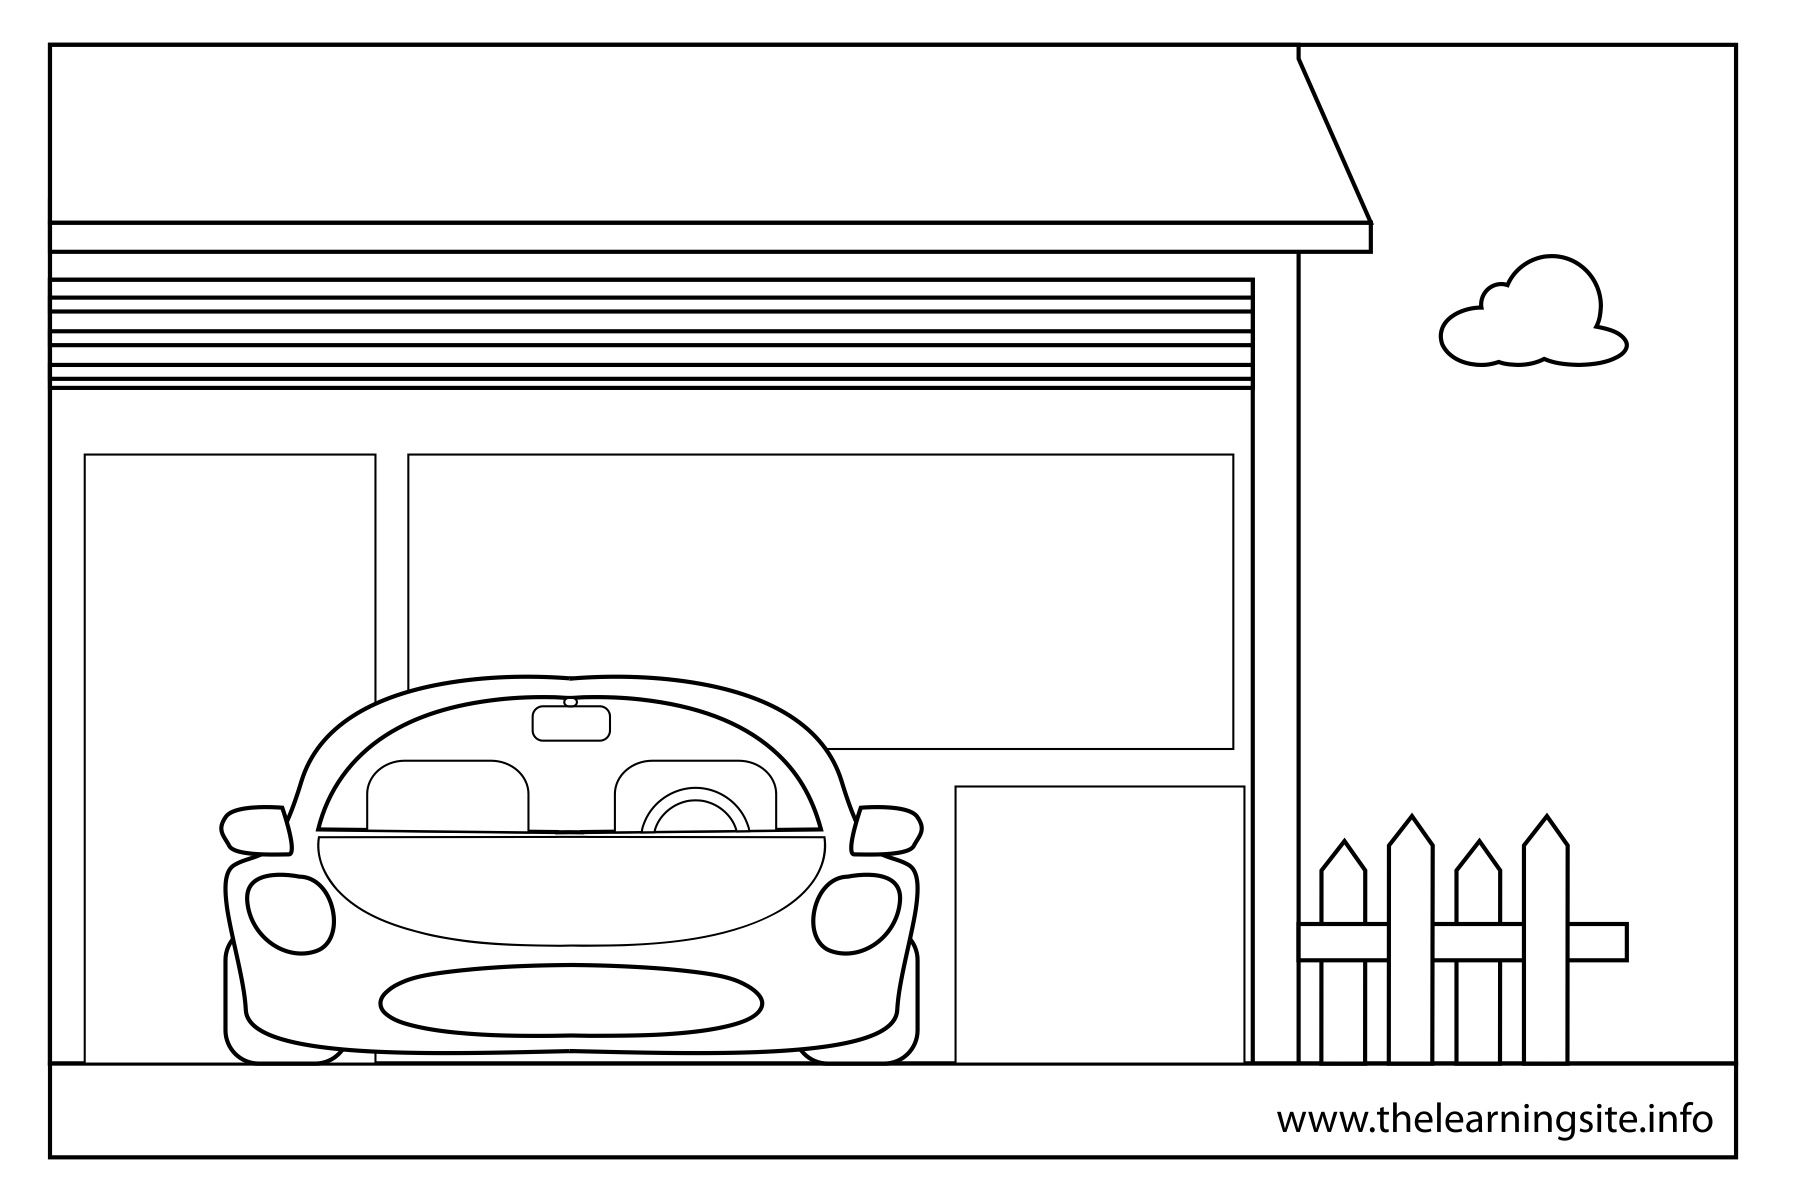 car garage coloring pages | Free the parts of the house coloring pages | esl activities